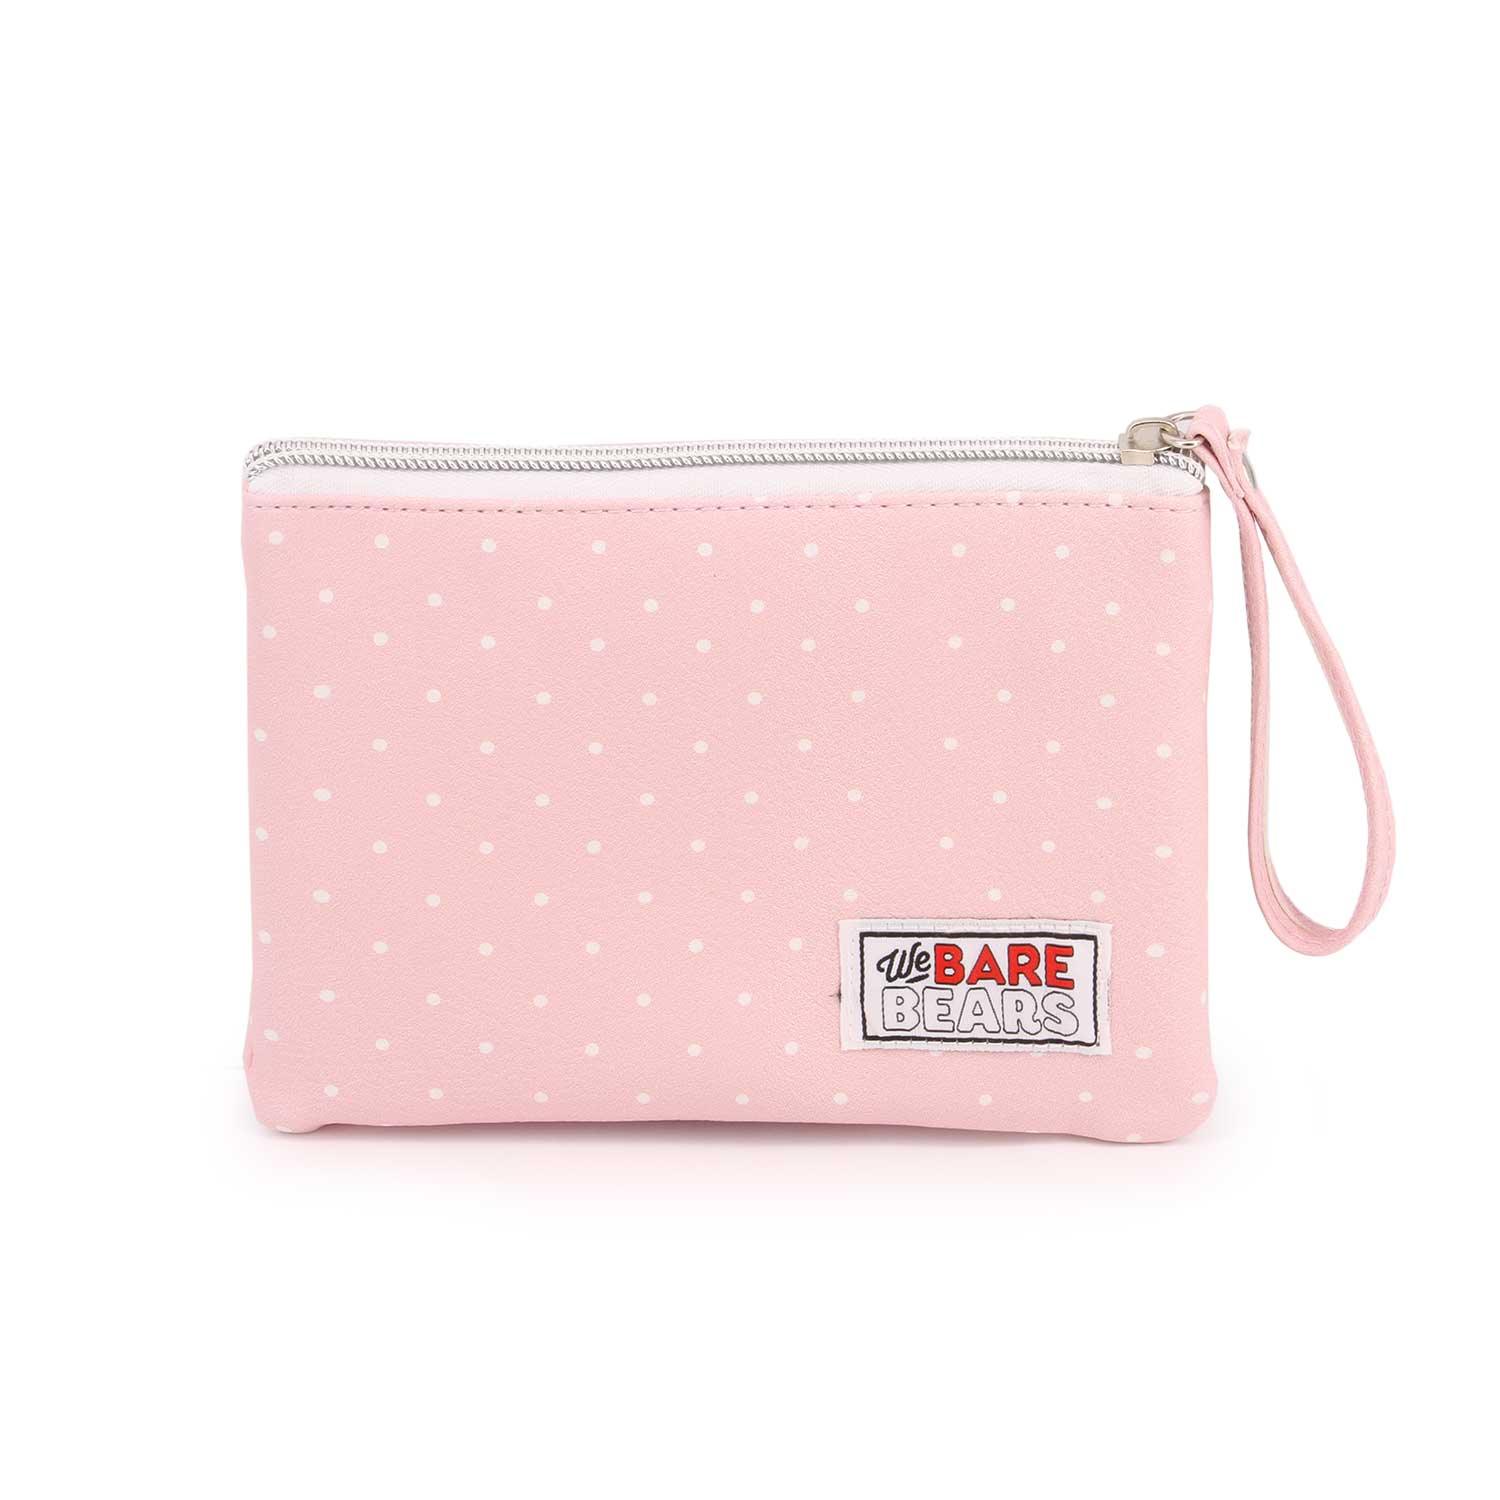 Beauty Case We Bare Bears Pink